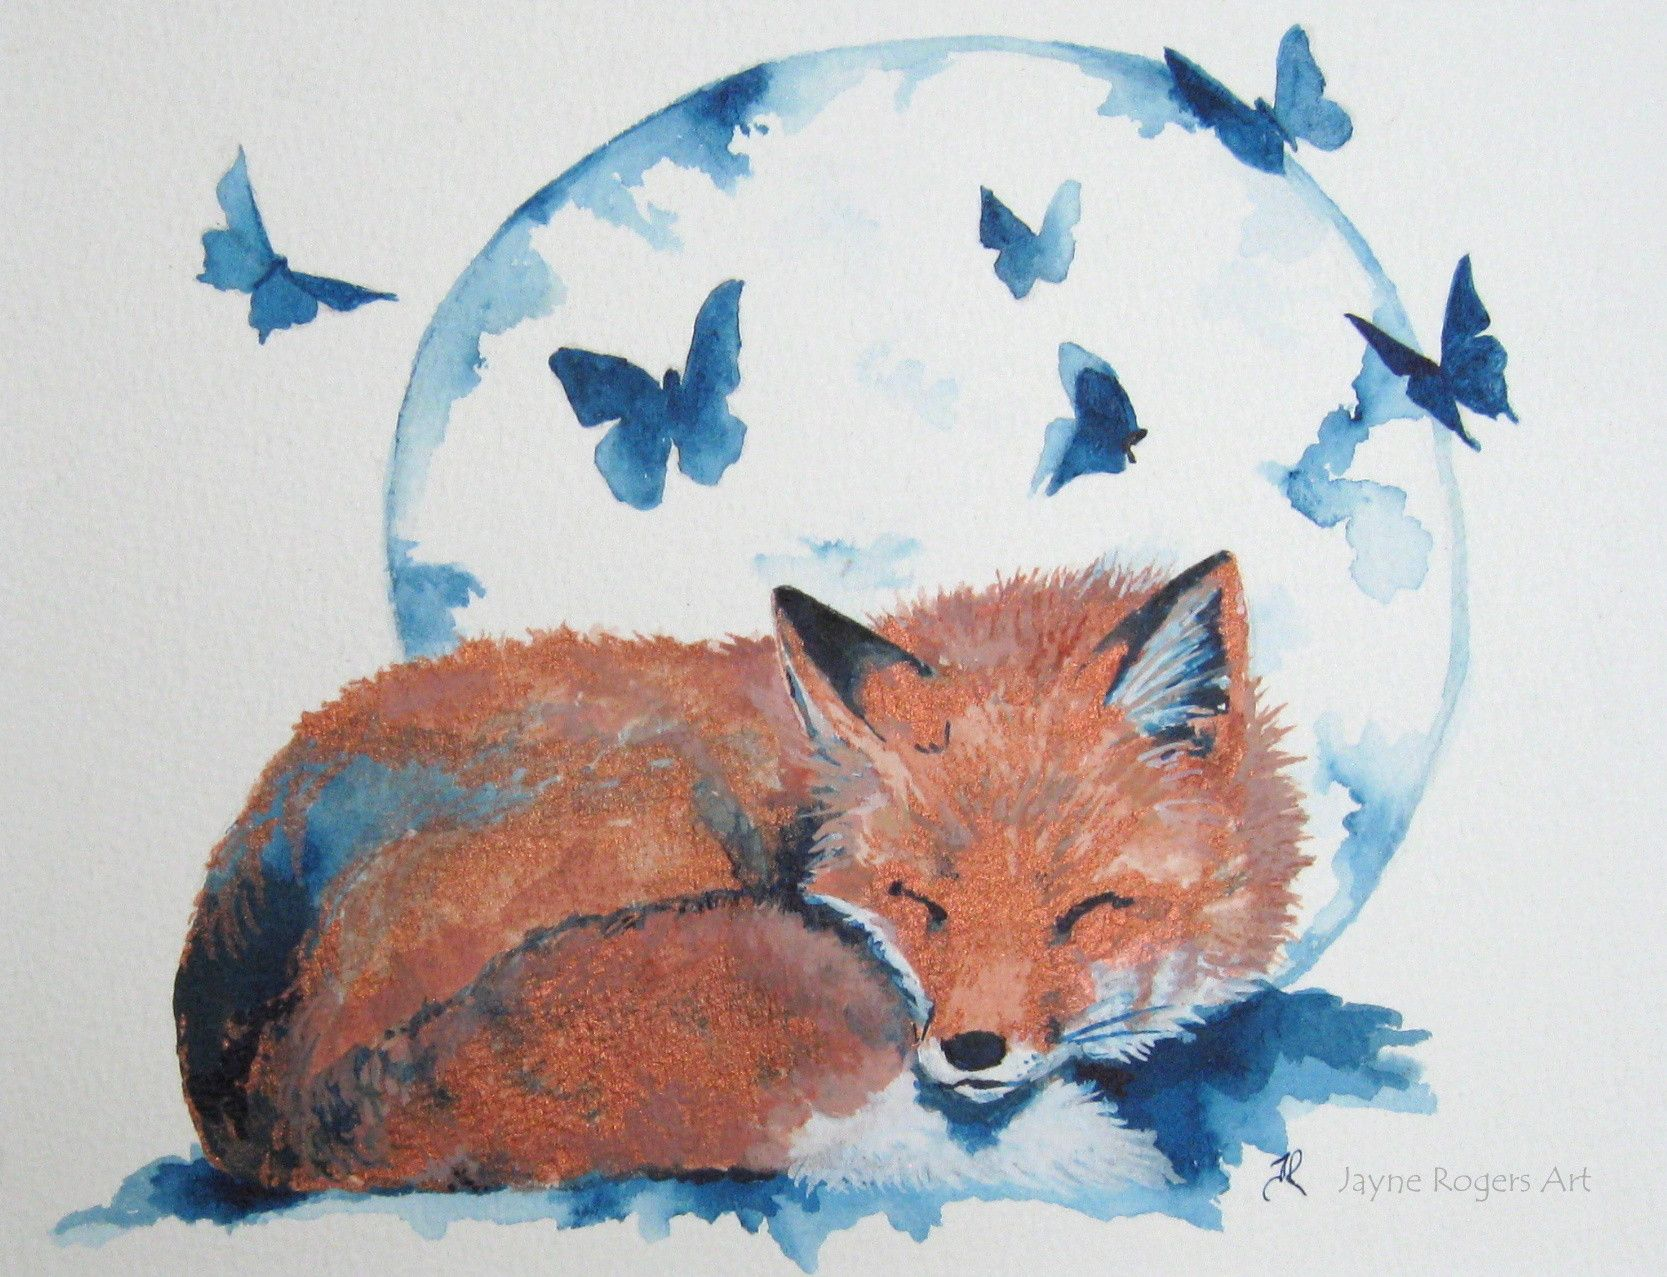 Luna Fox Original Painting Fox Moon And Butterfly Painting With Acrylic Ink By Jayne Rogers Art Fox Painting Contempary Art Animal Paintings